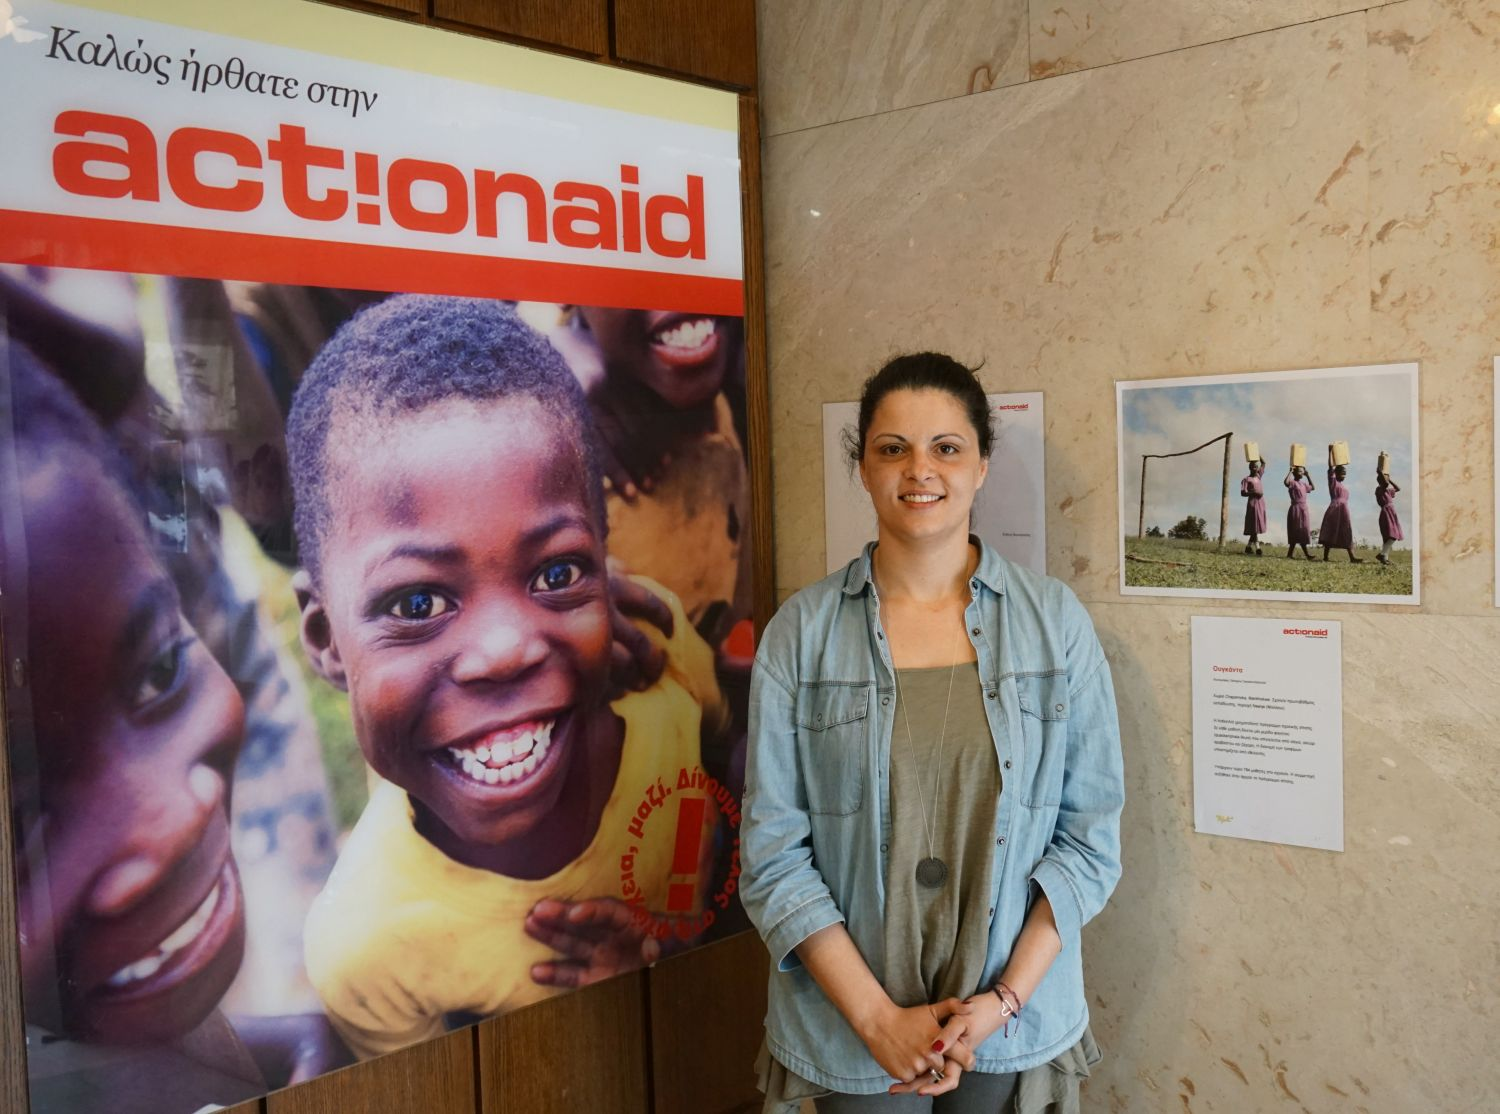 Η Σωτηρία Κυριακοπούλου, Refugee and Migration Program Manager στην ActionAid Hellas   © Marina Tomara